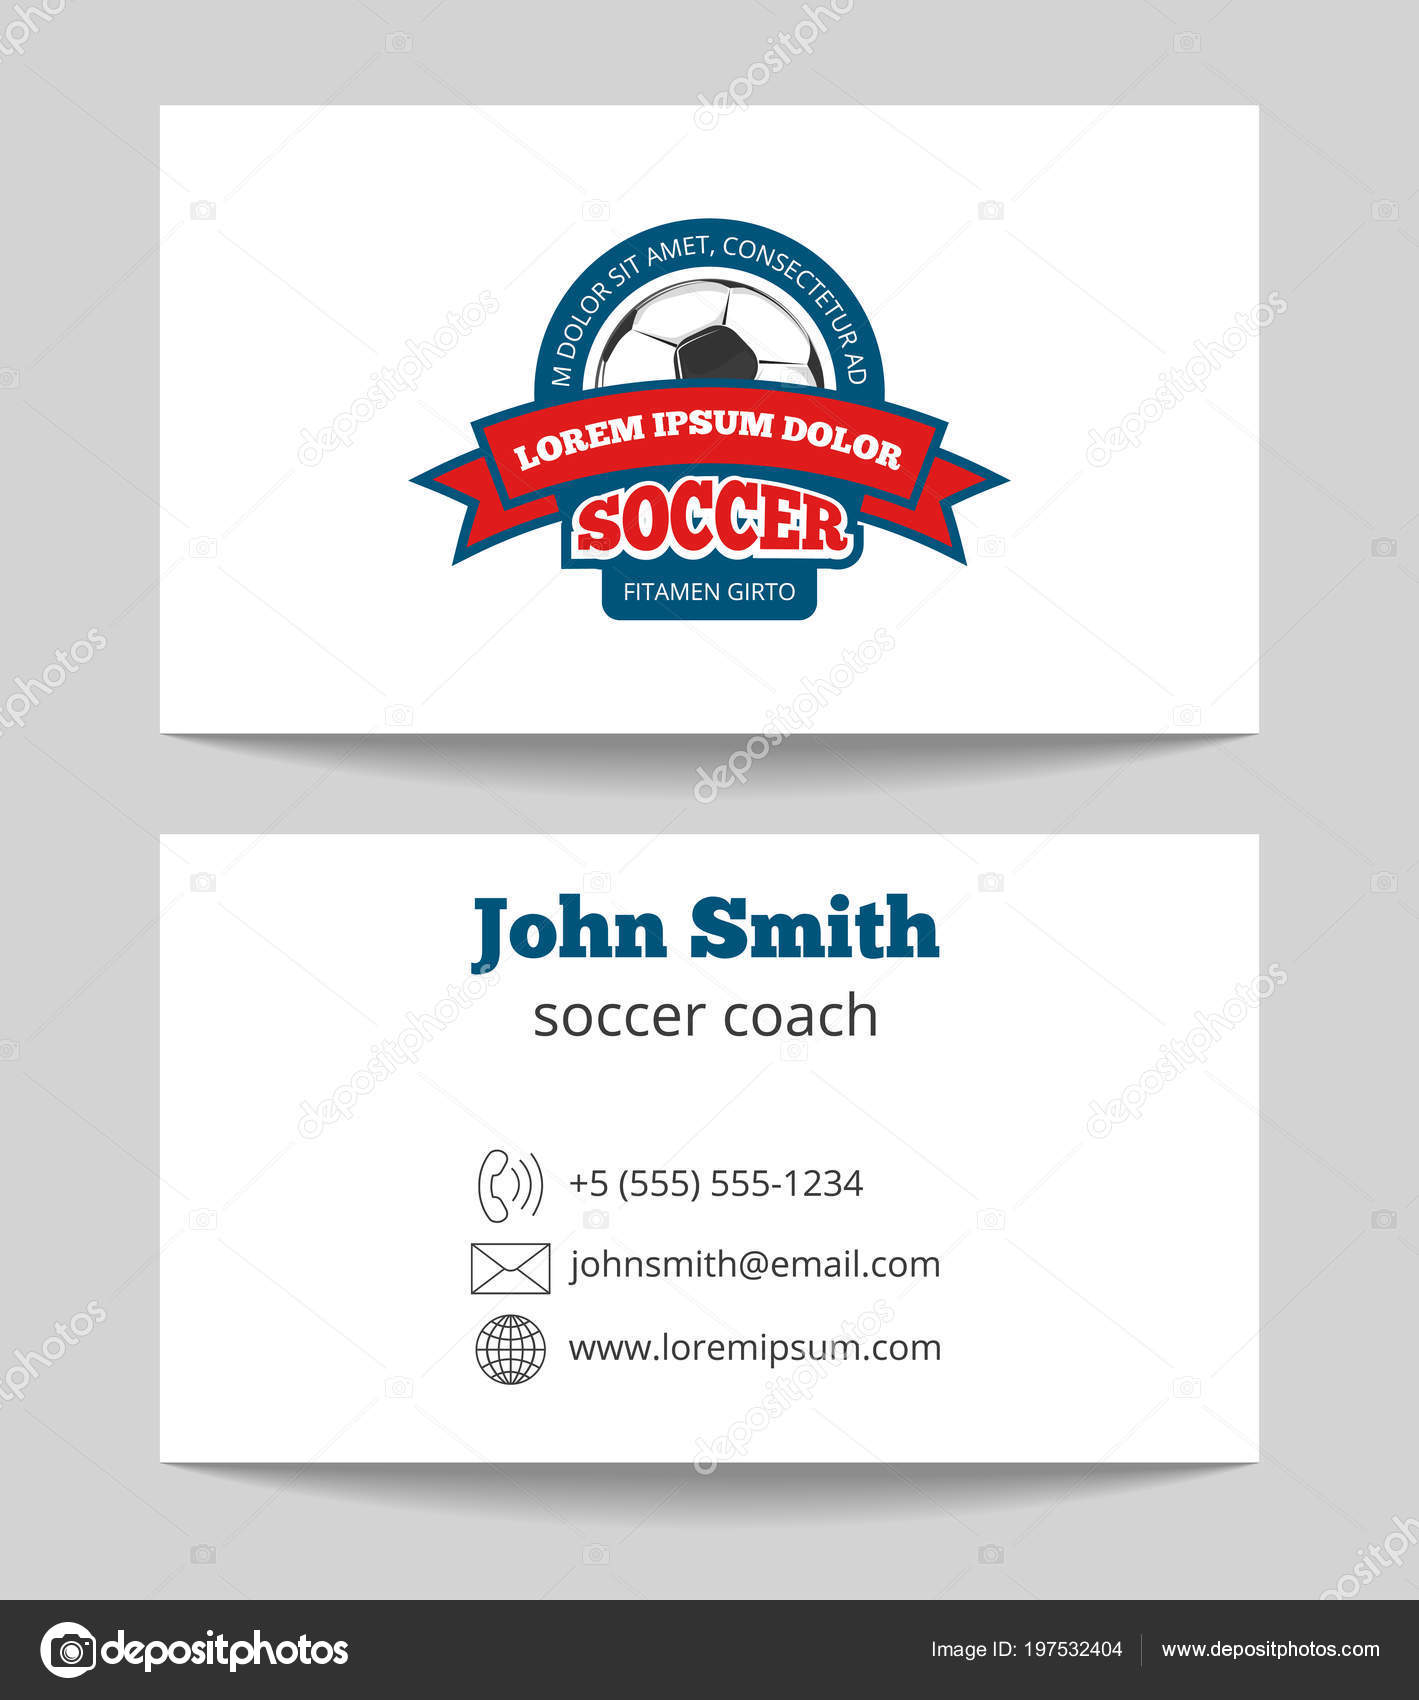 soccer coach business card template with logo stock vector